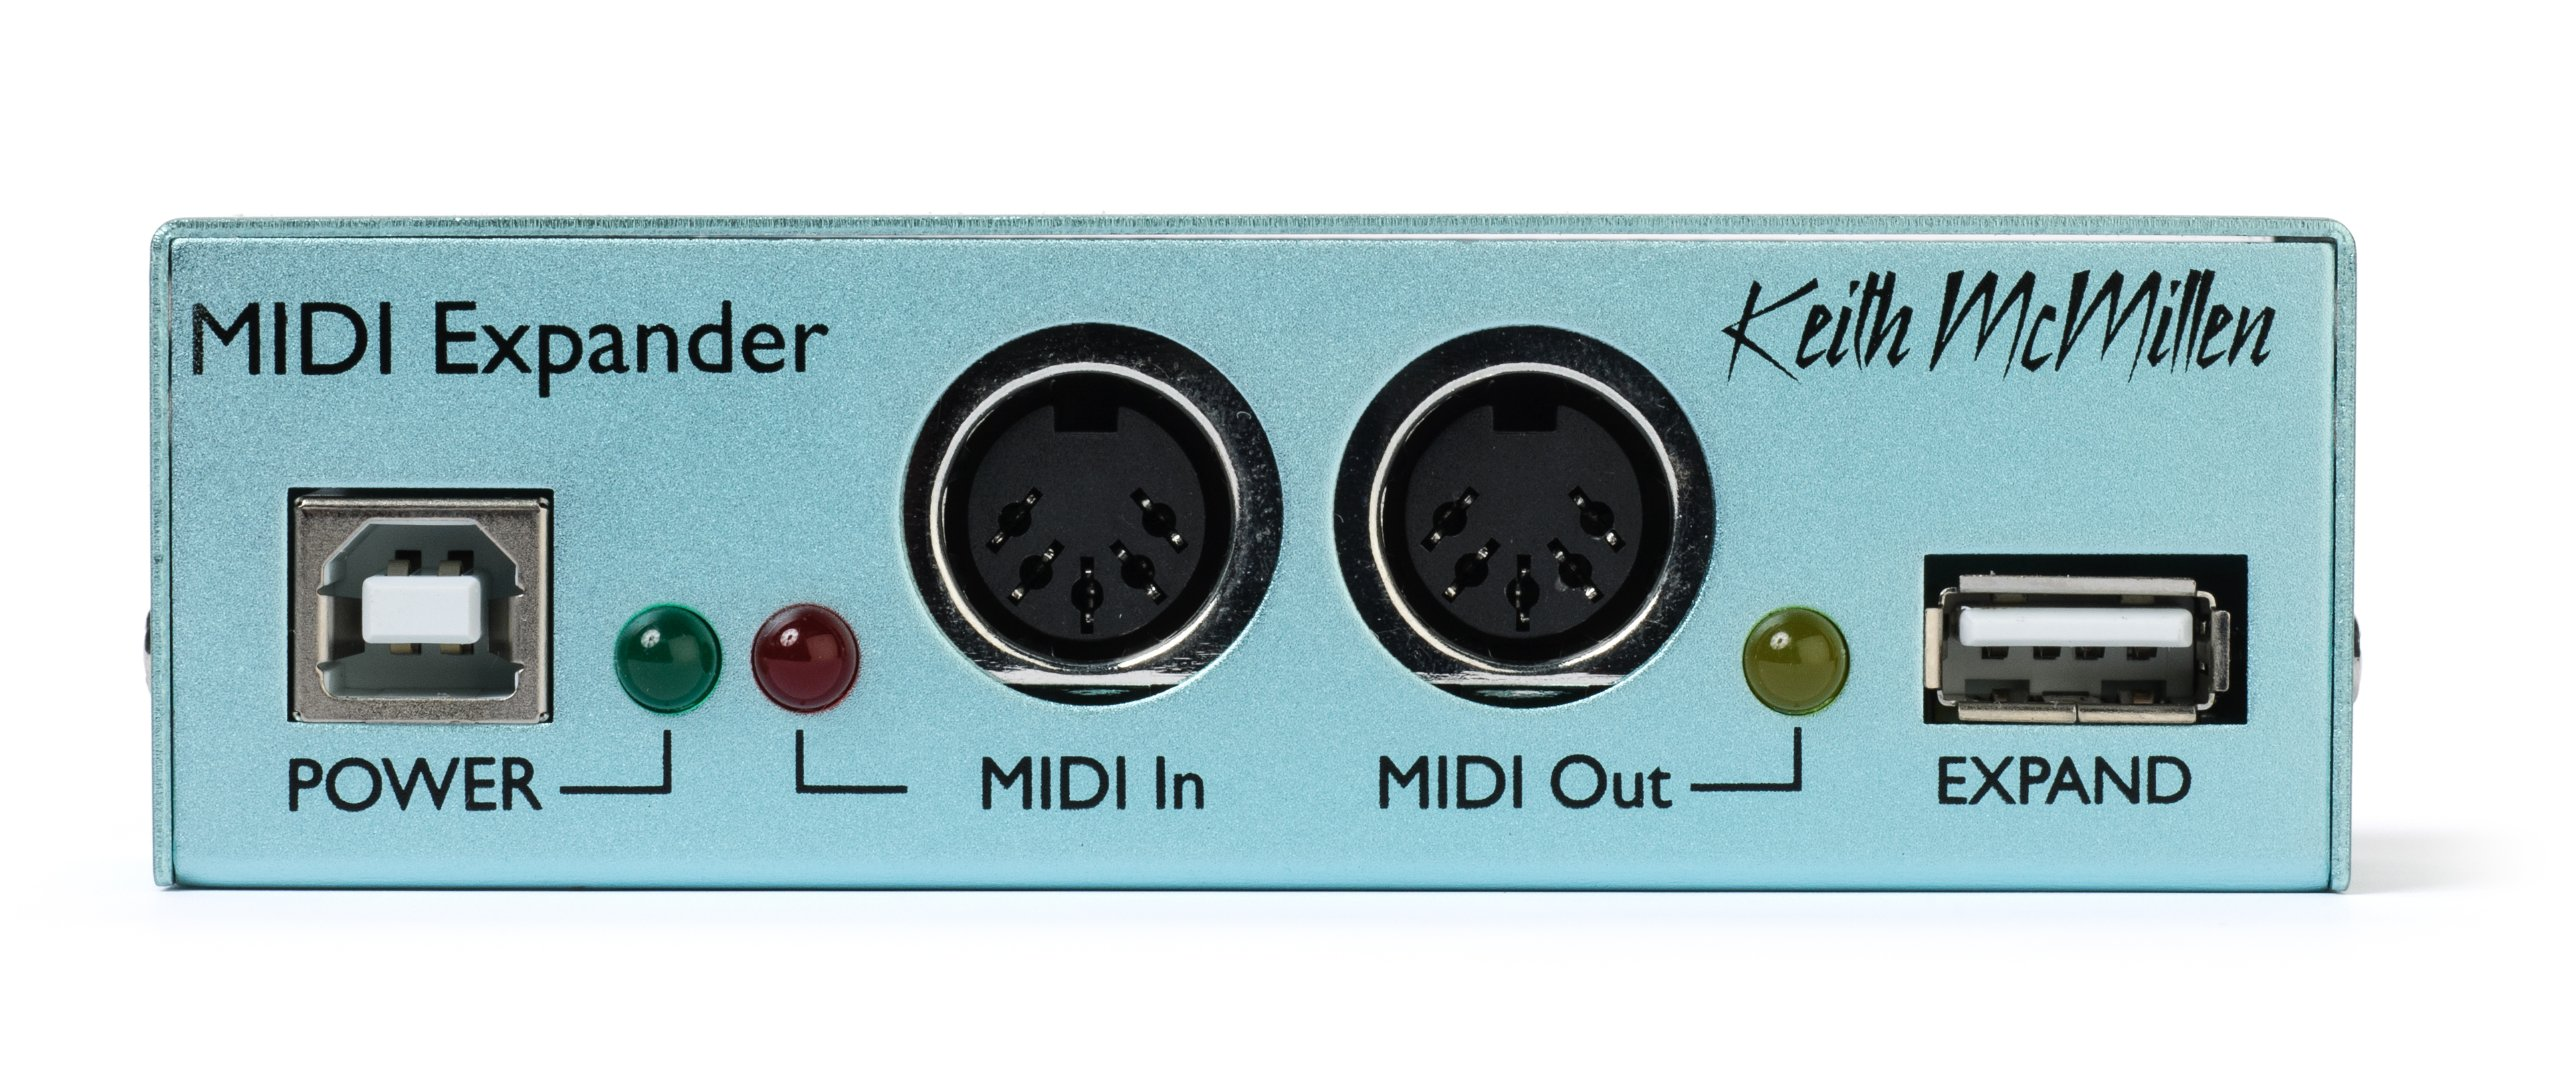 MIDI Expander for Keith McMillen Instruments by Keith McMillen Instruments (Image #2)